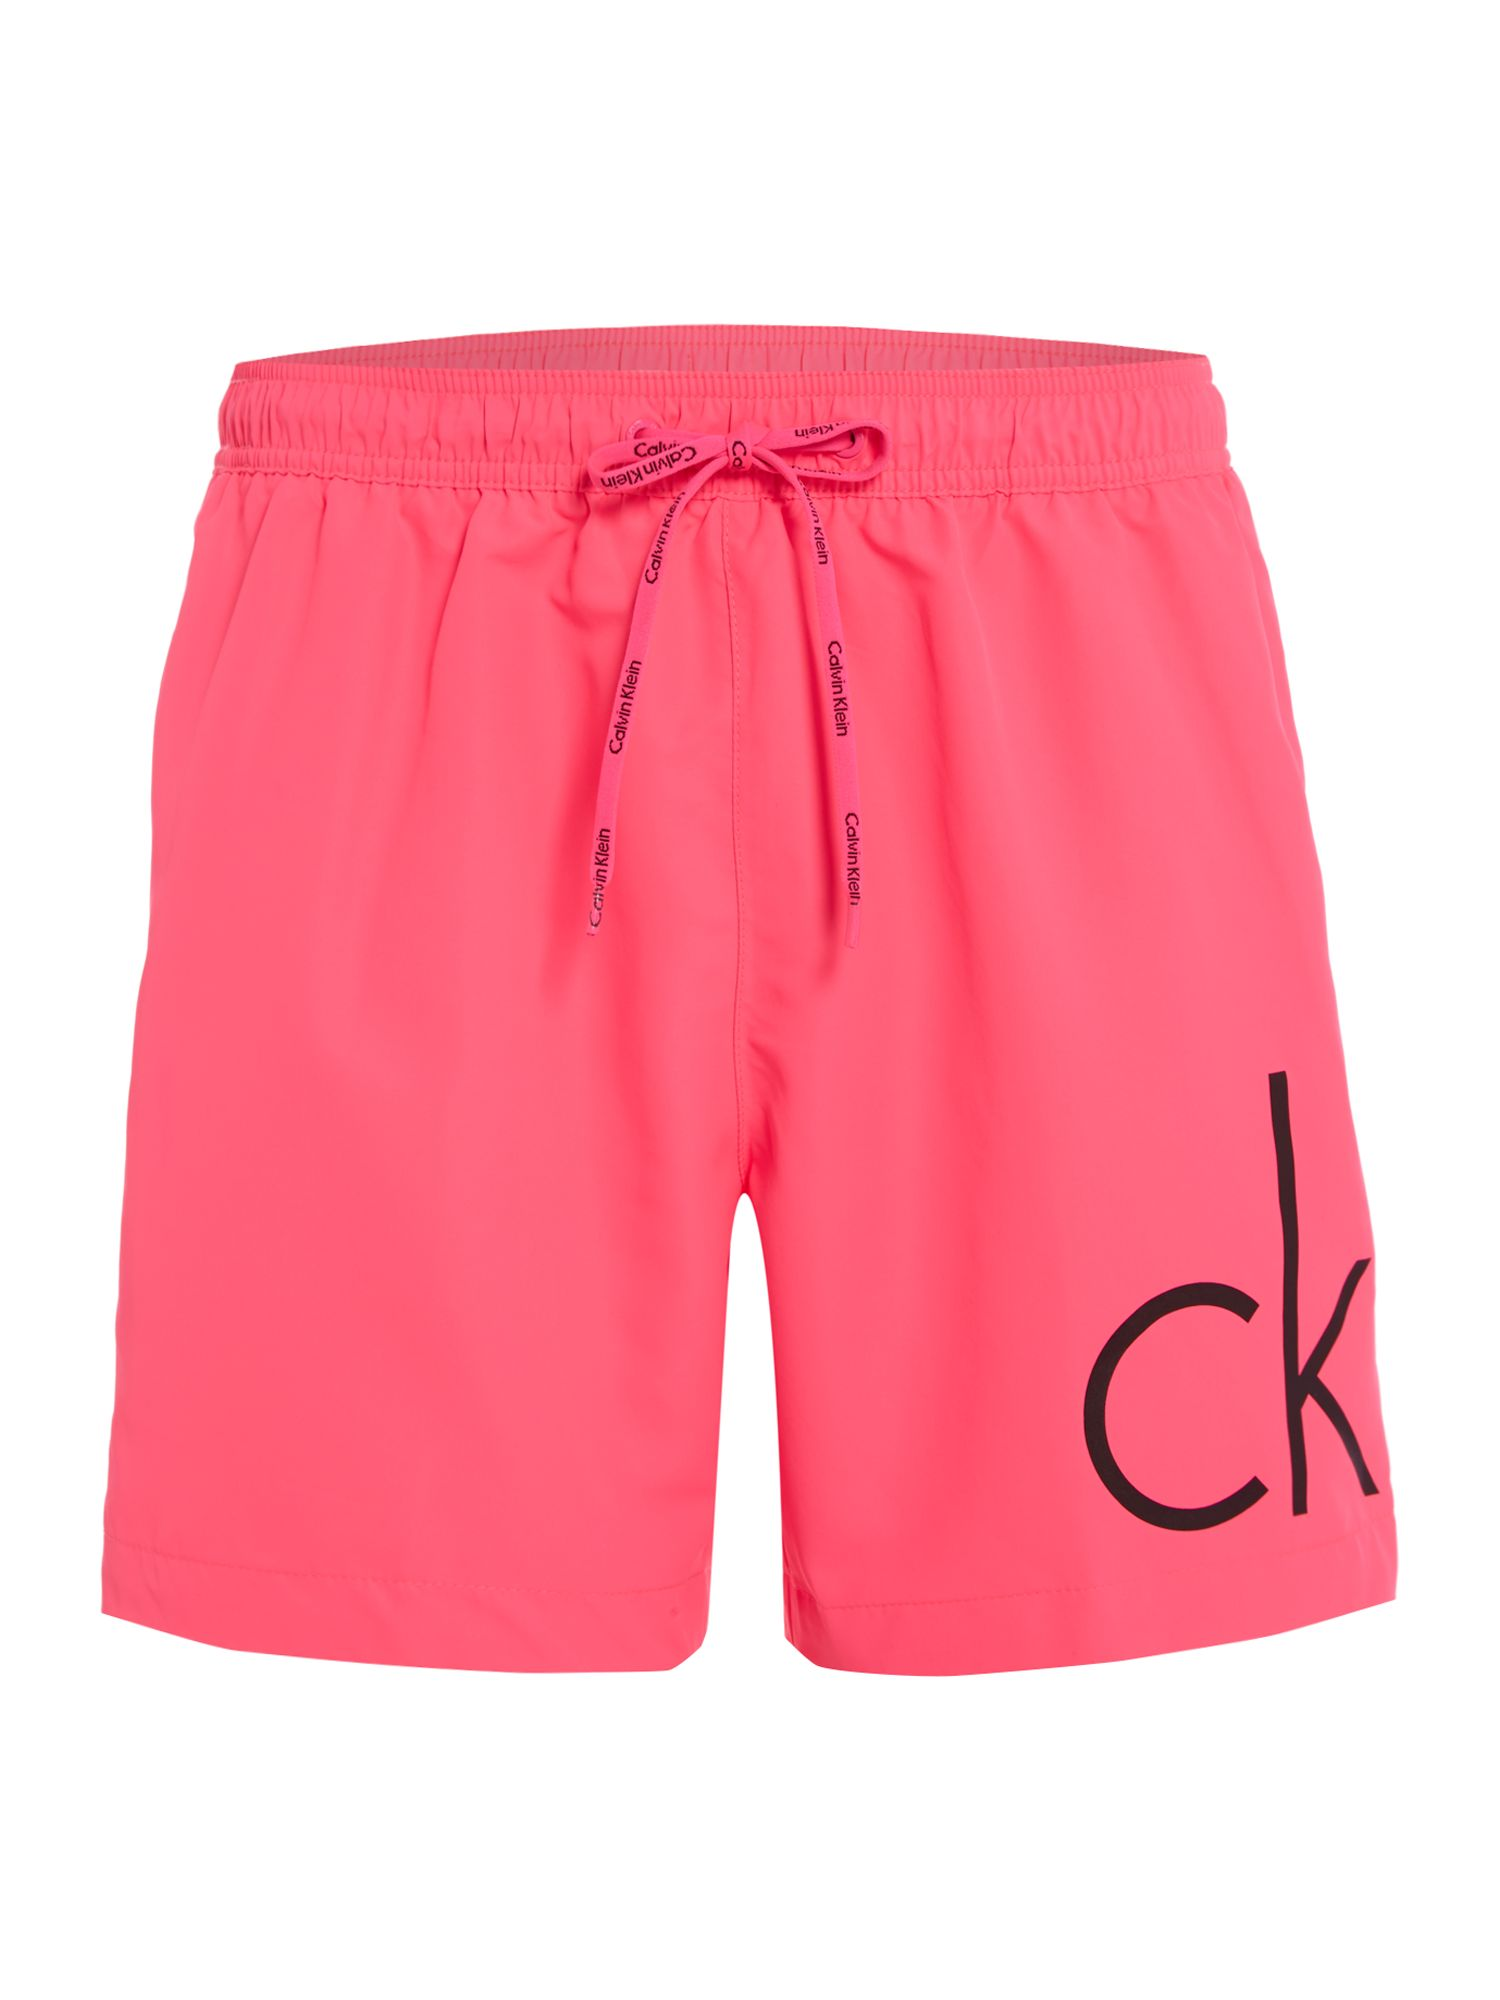 Men's Calvin Klein CK Logo Swim Short, Pink